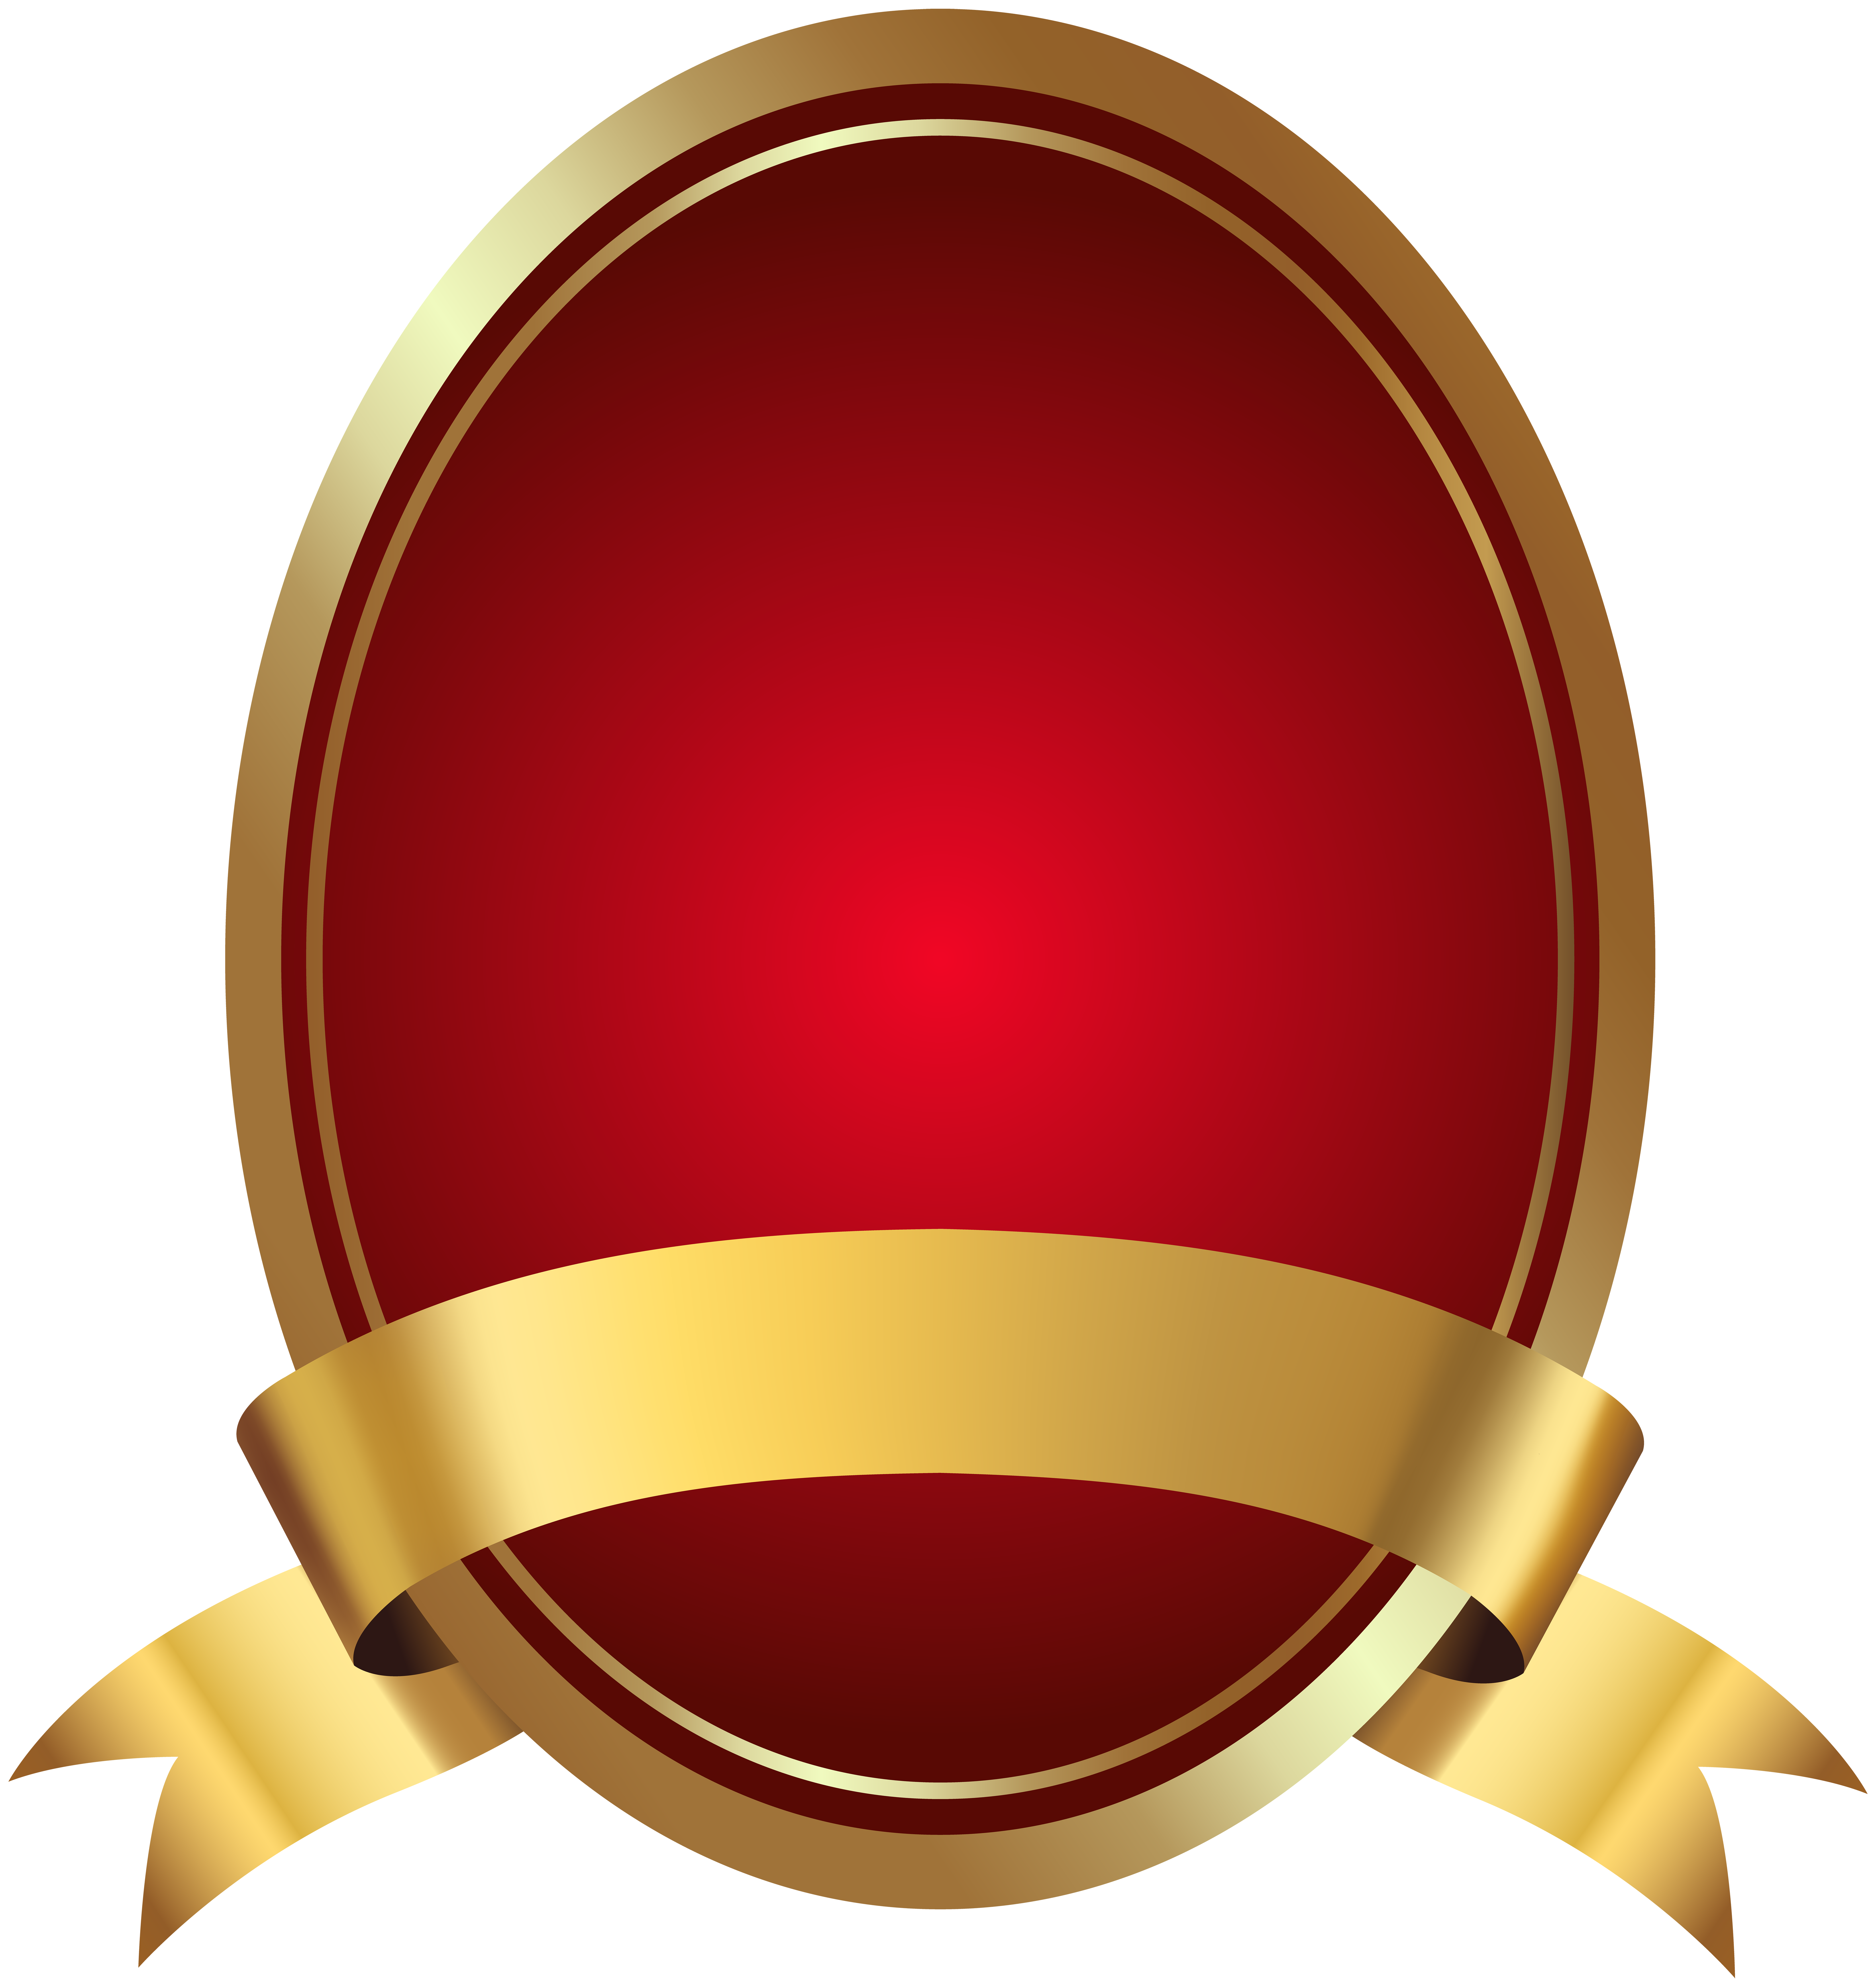 Red Label with Banner PNG Clip Art Image.